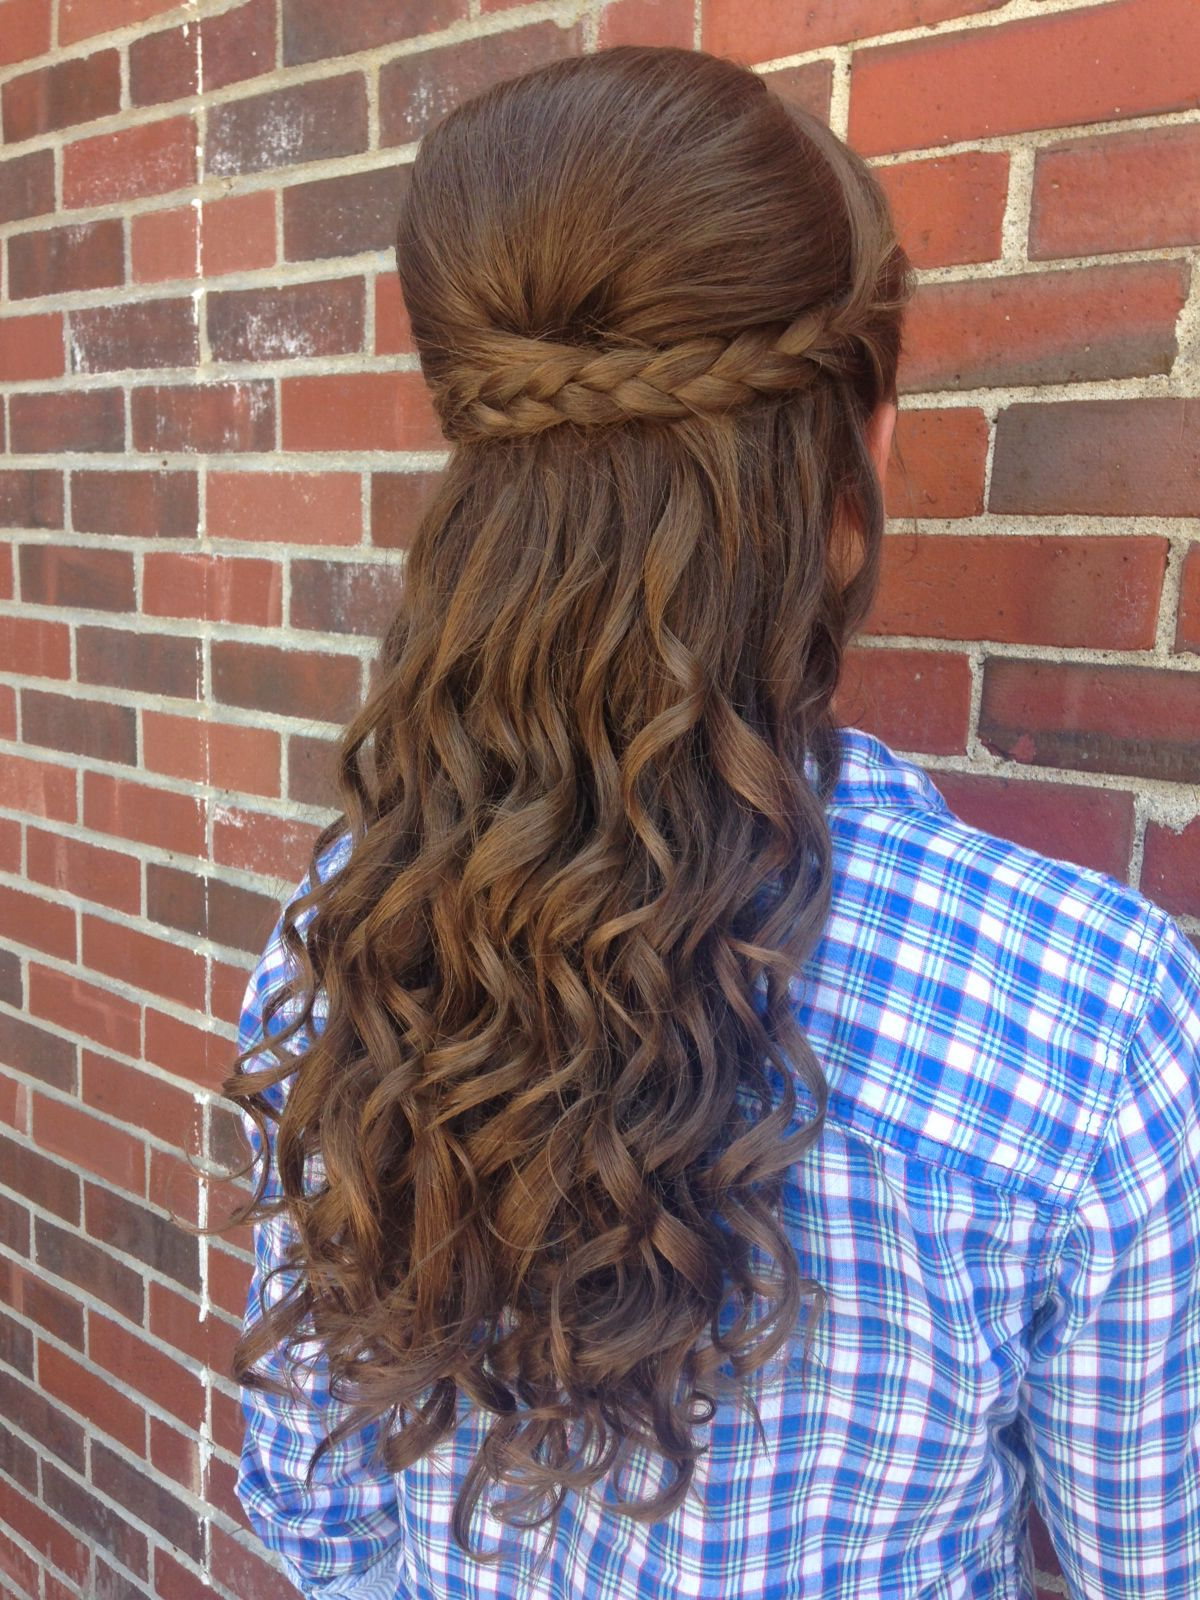 Prom hair half up half down curly braided bump romantic updo